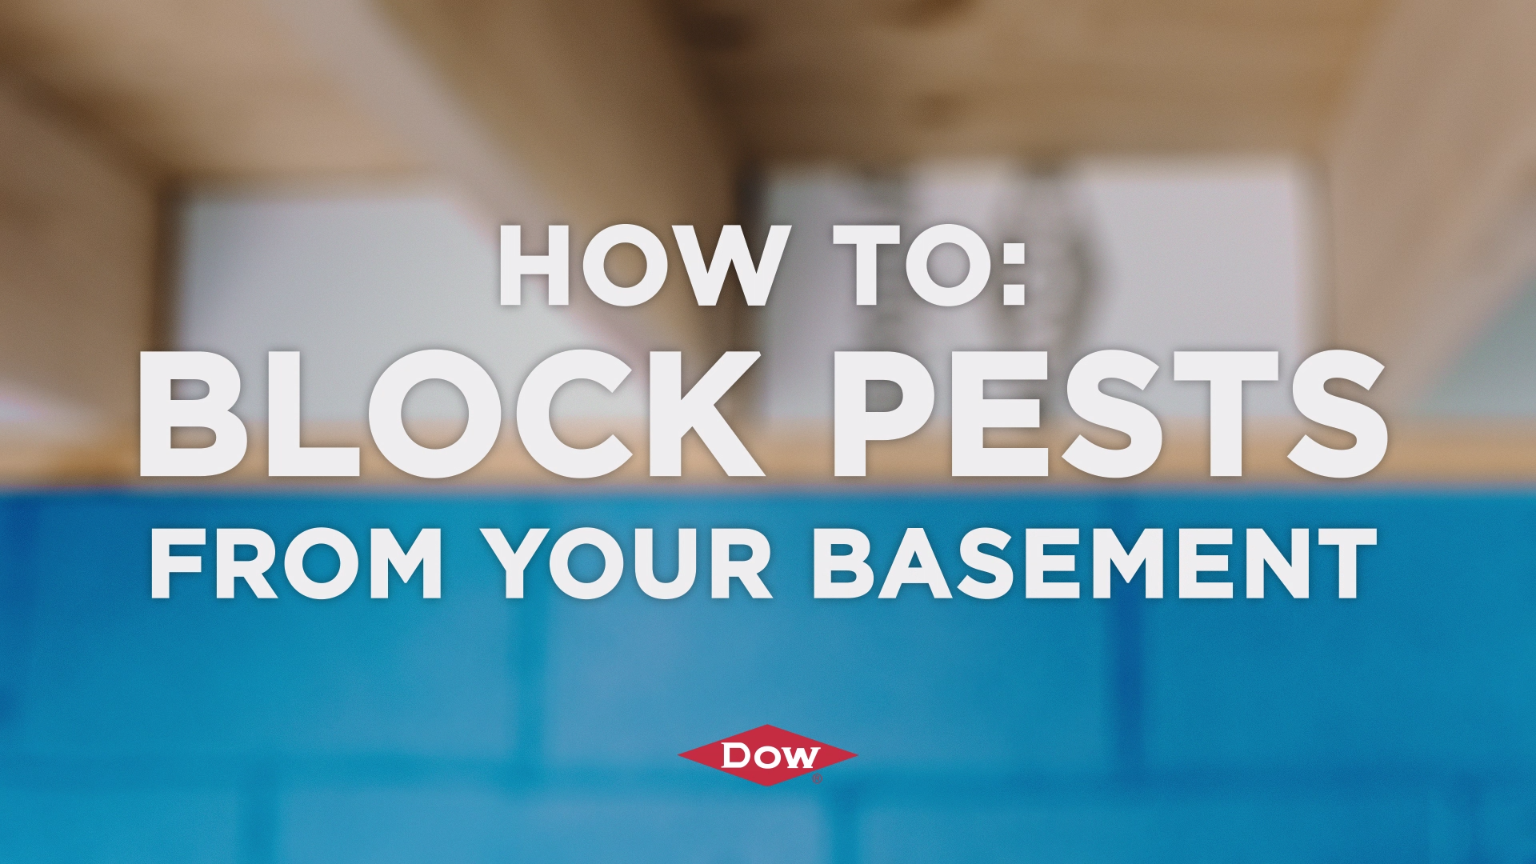 Learn how you can block pests out from your basement using